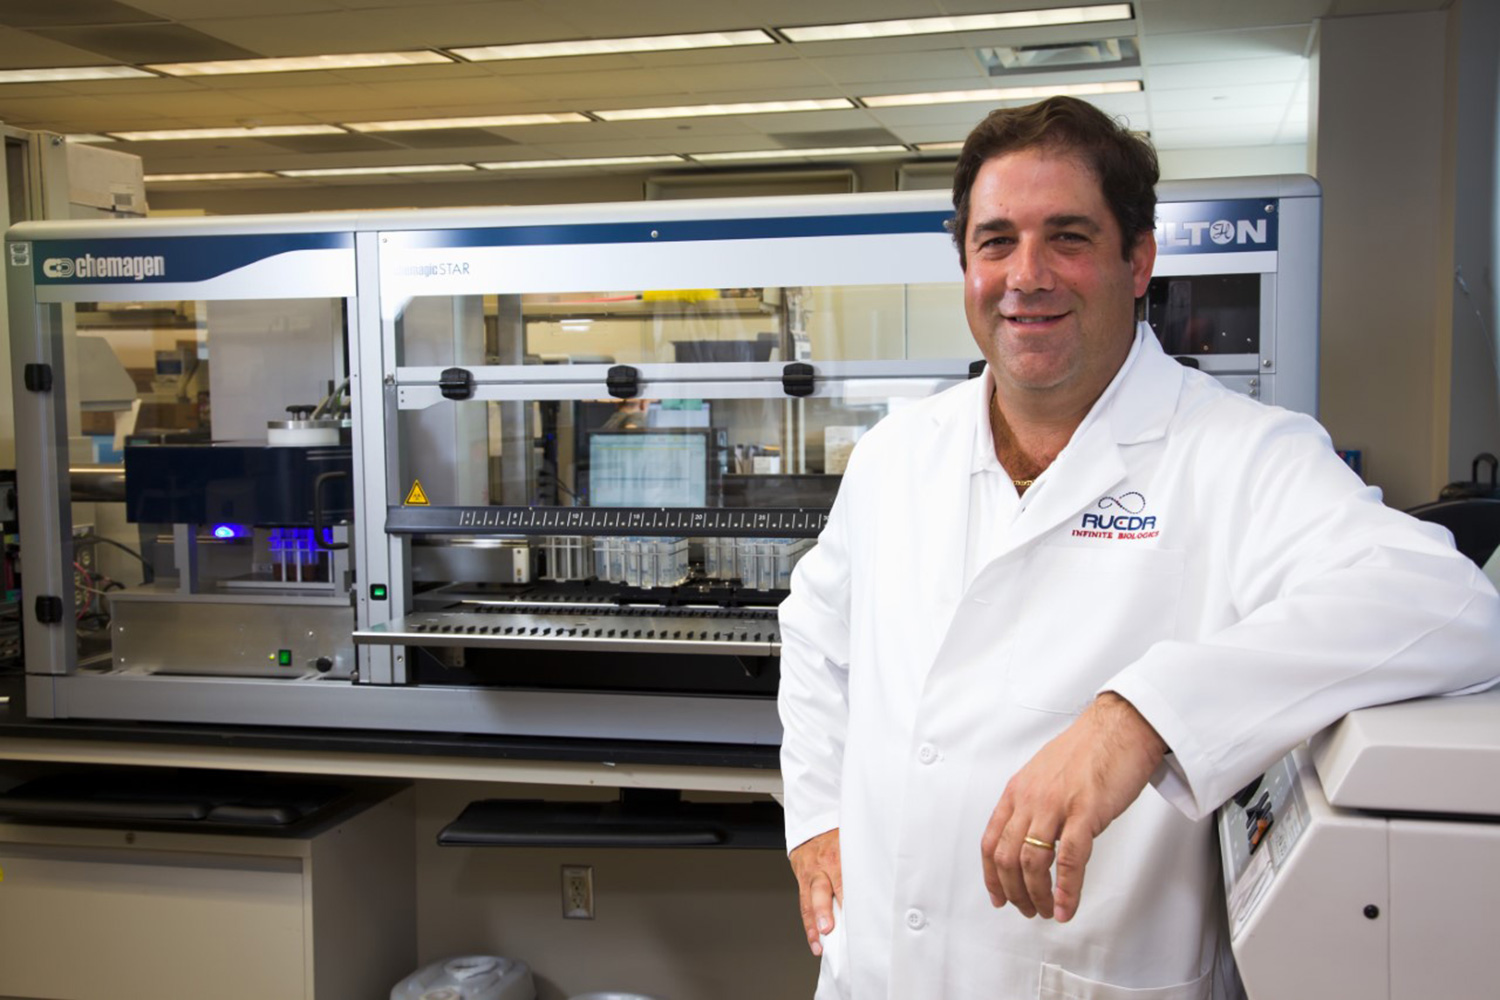 Rutgers Professor Andrew Brooks, chief operating officer and director of technology development at RUCDR Infinite Biologics.